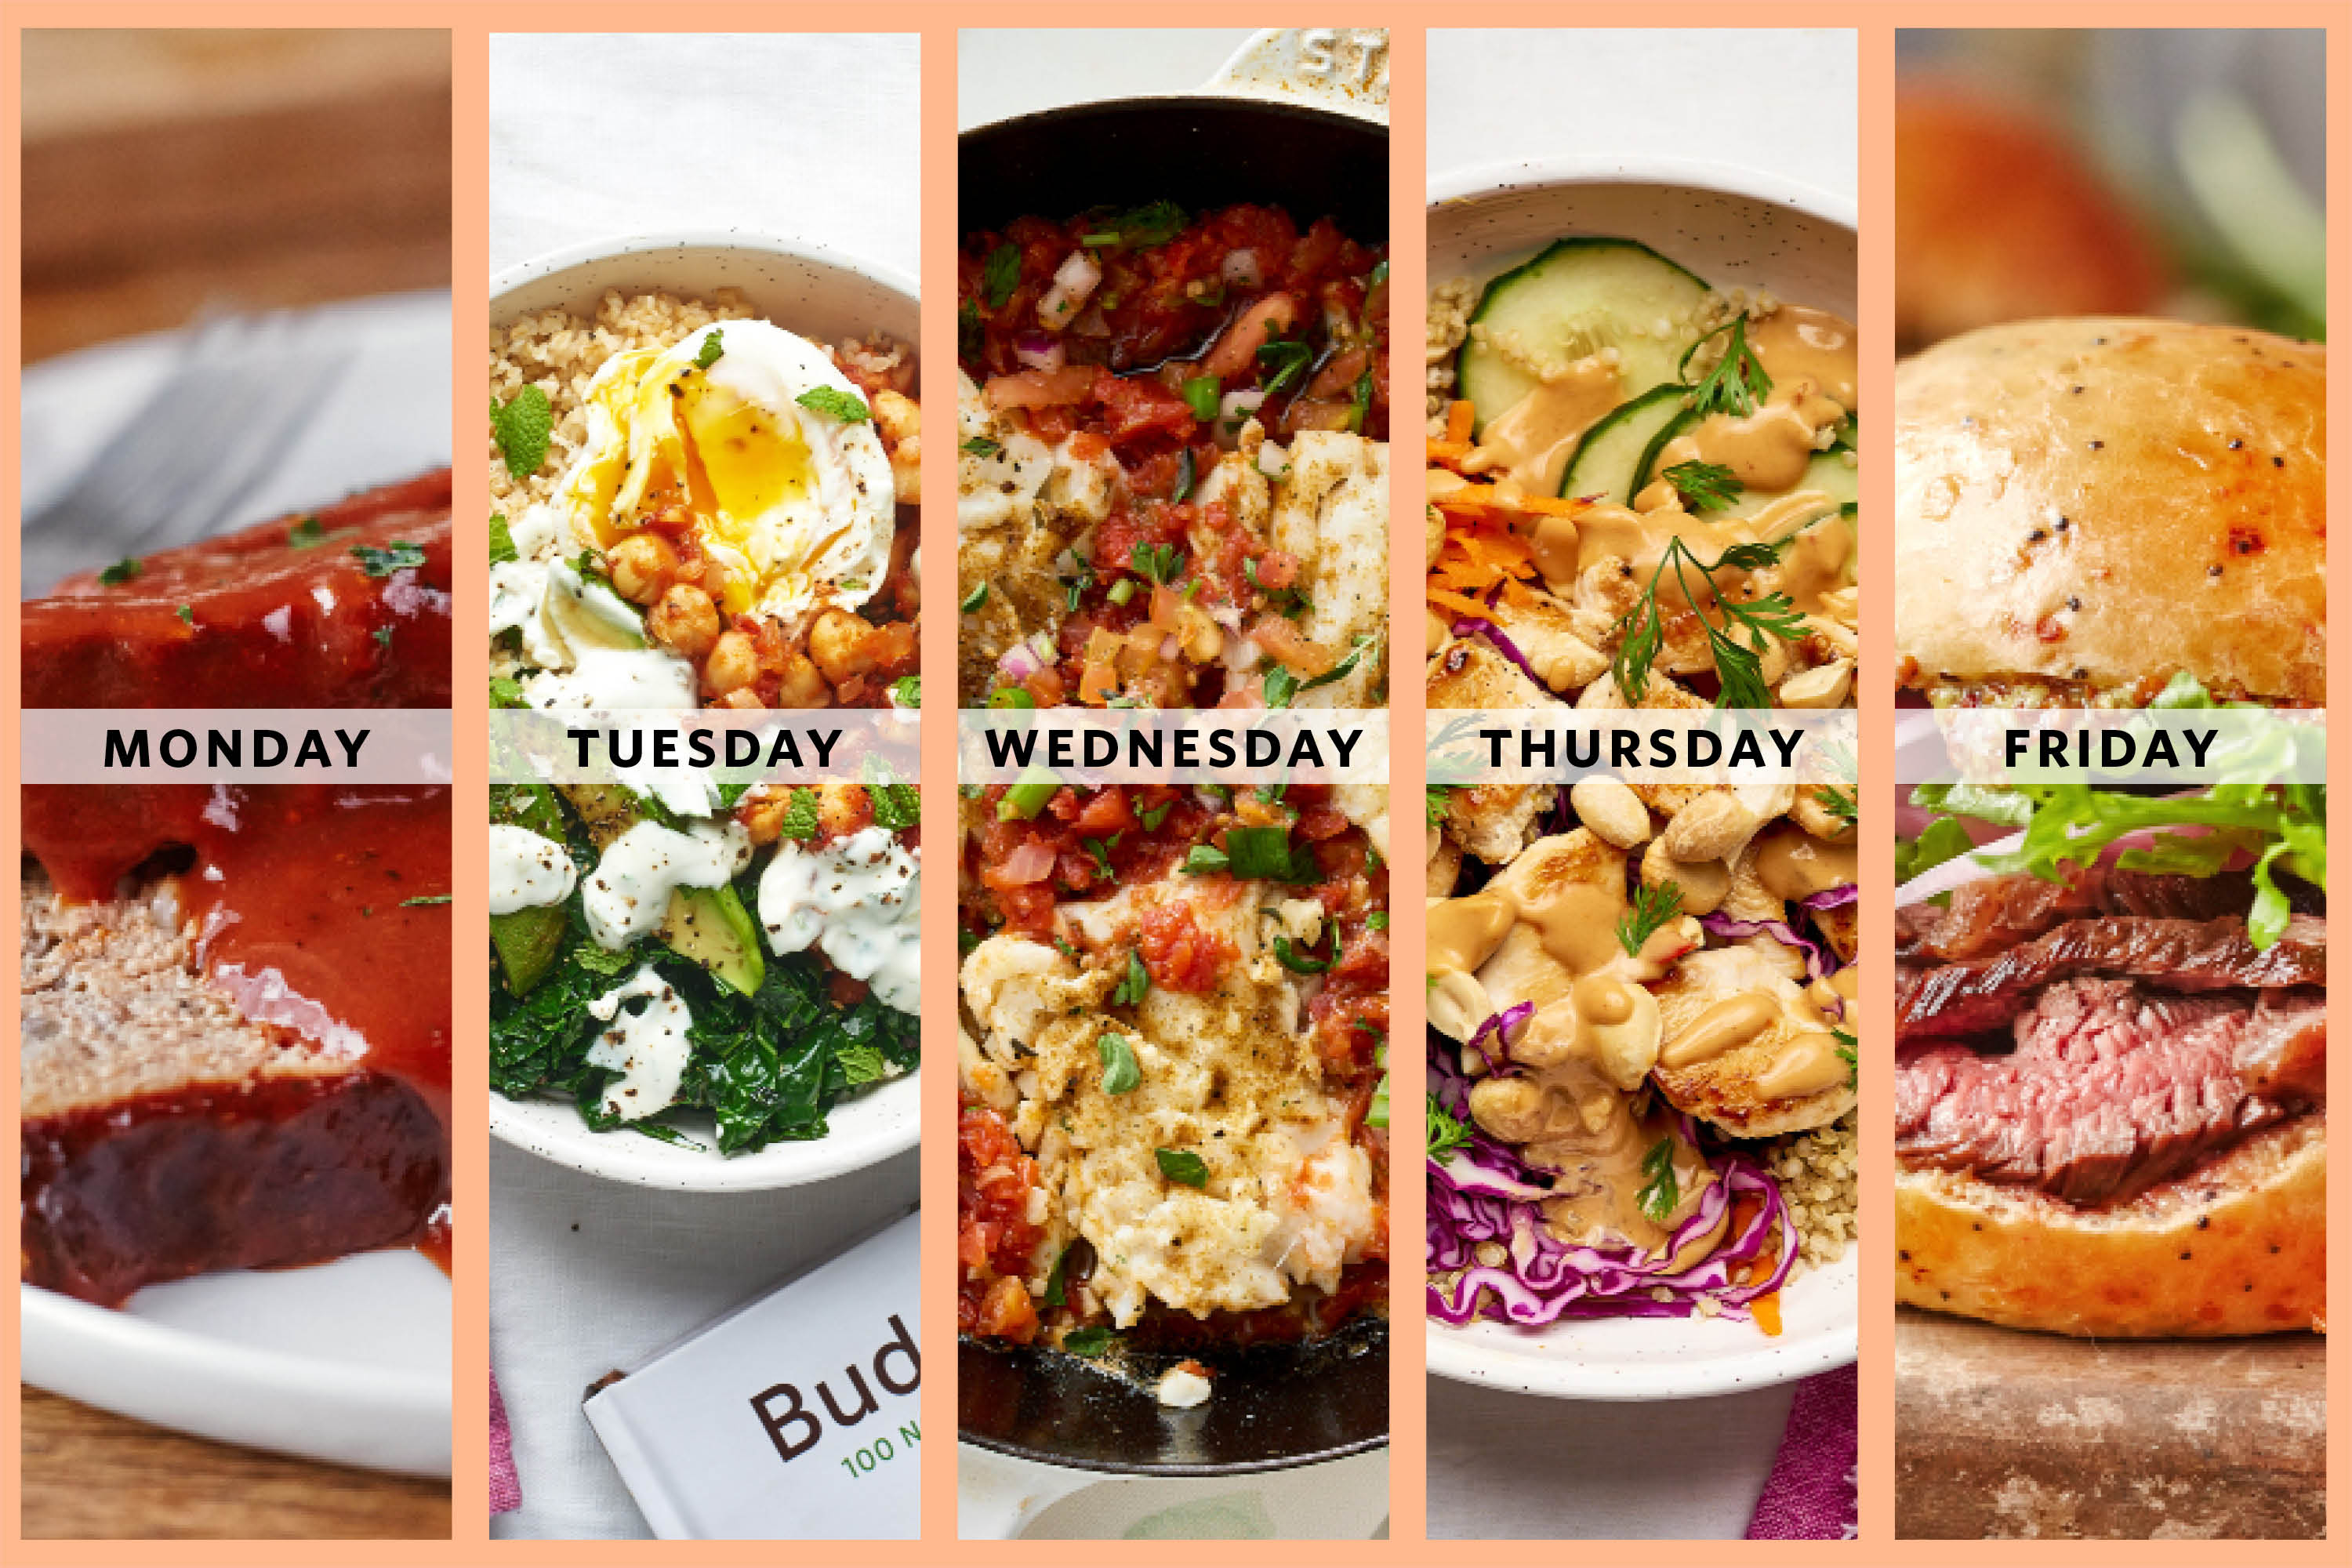 Next Week's Meal Plan: 5 High-Protein Dinners for the Week Ahead